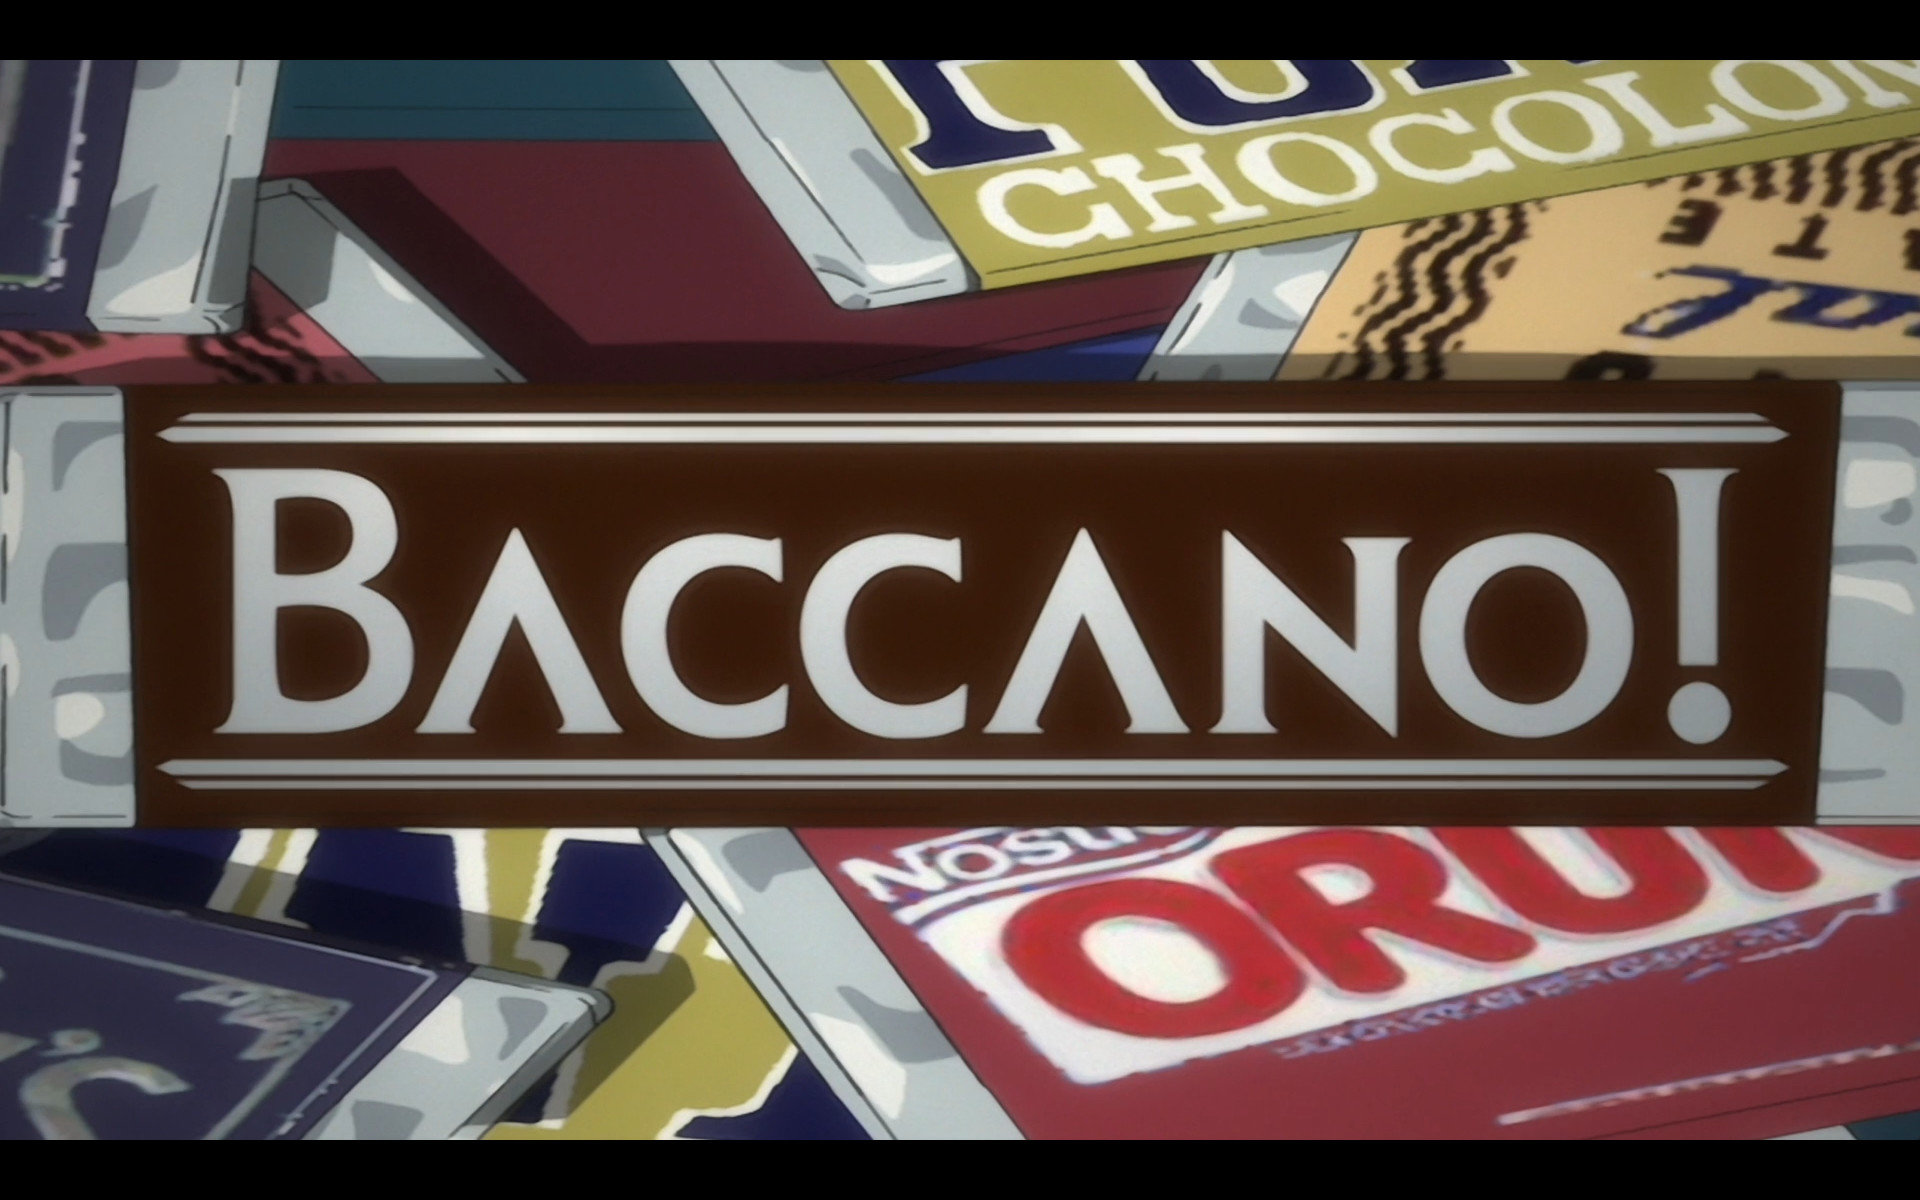 Download hd 1920x1200 Baccano! PC background ID:324388 for free